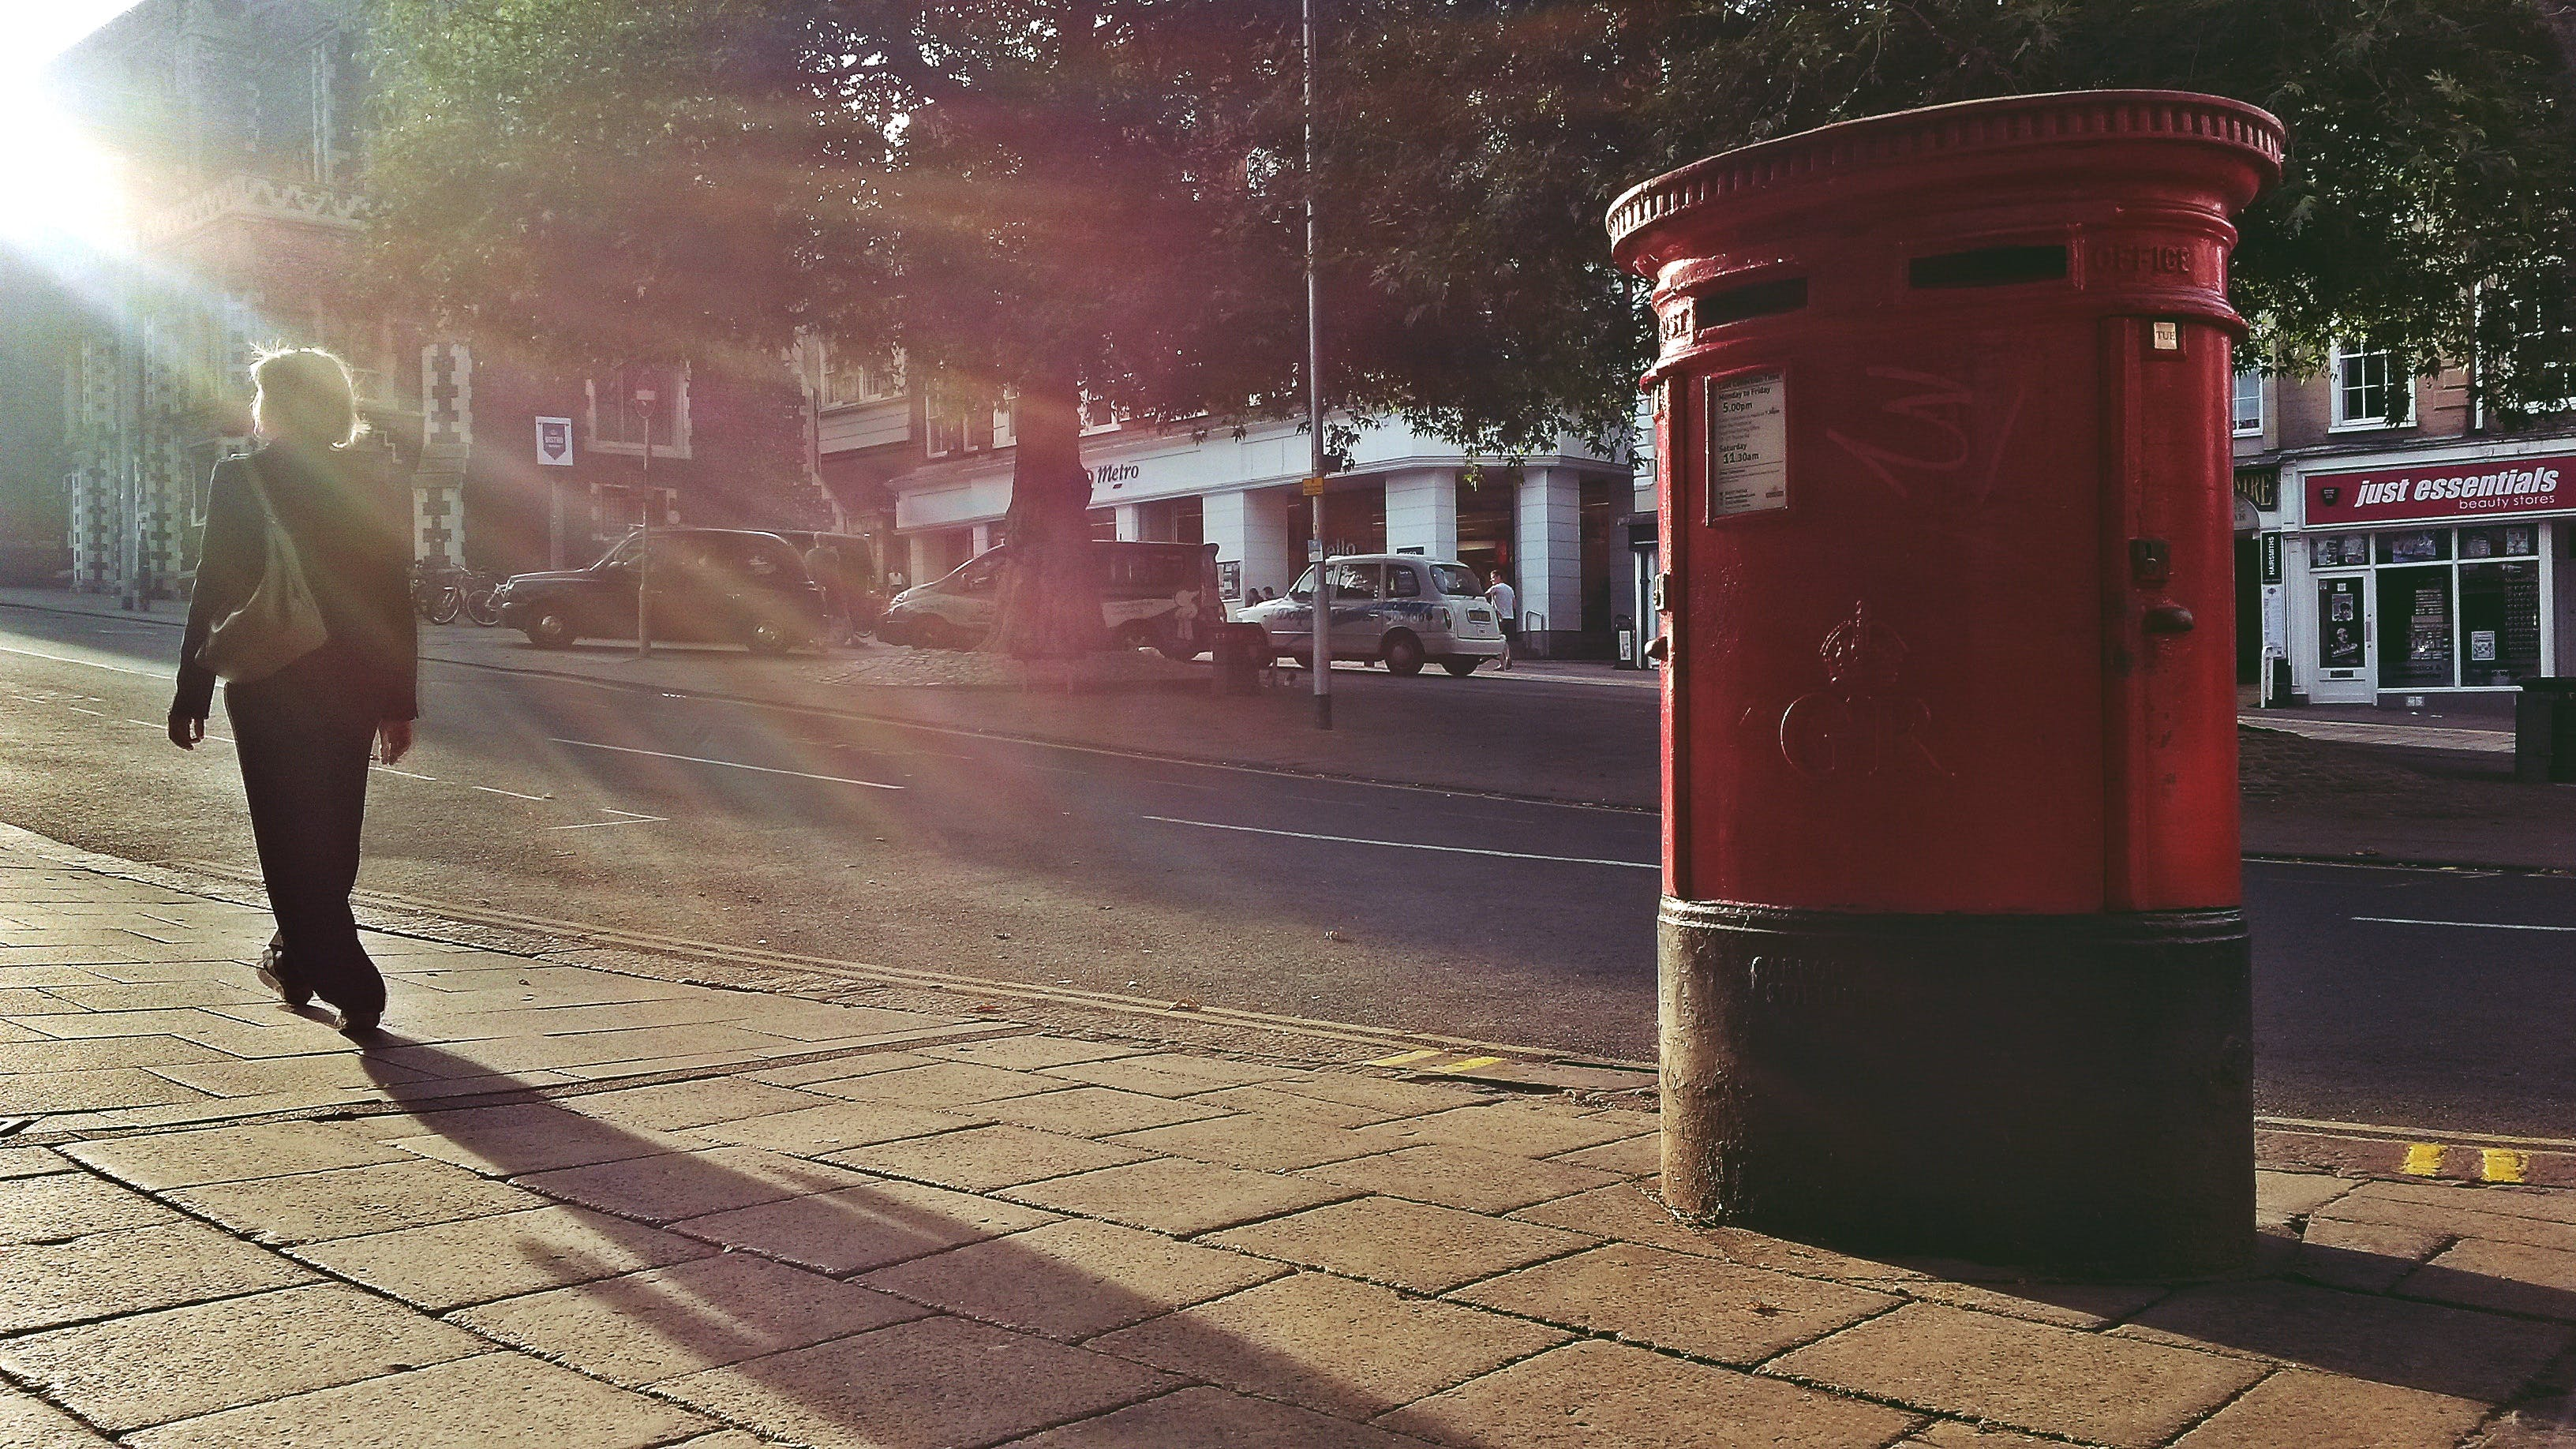 Free stock photo of busy street, people walking, post box, road